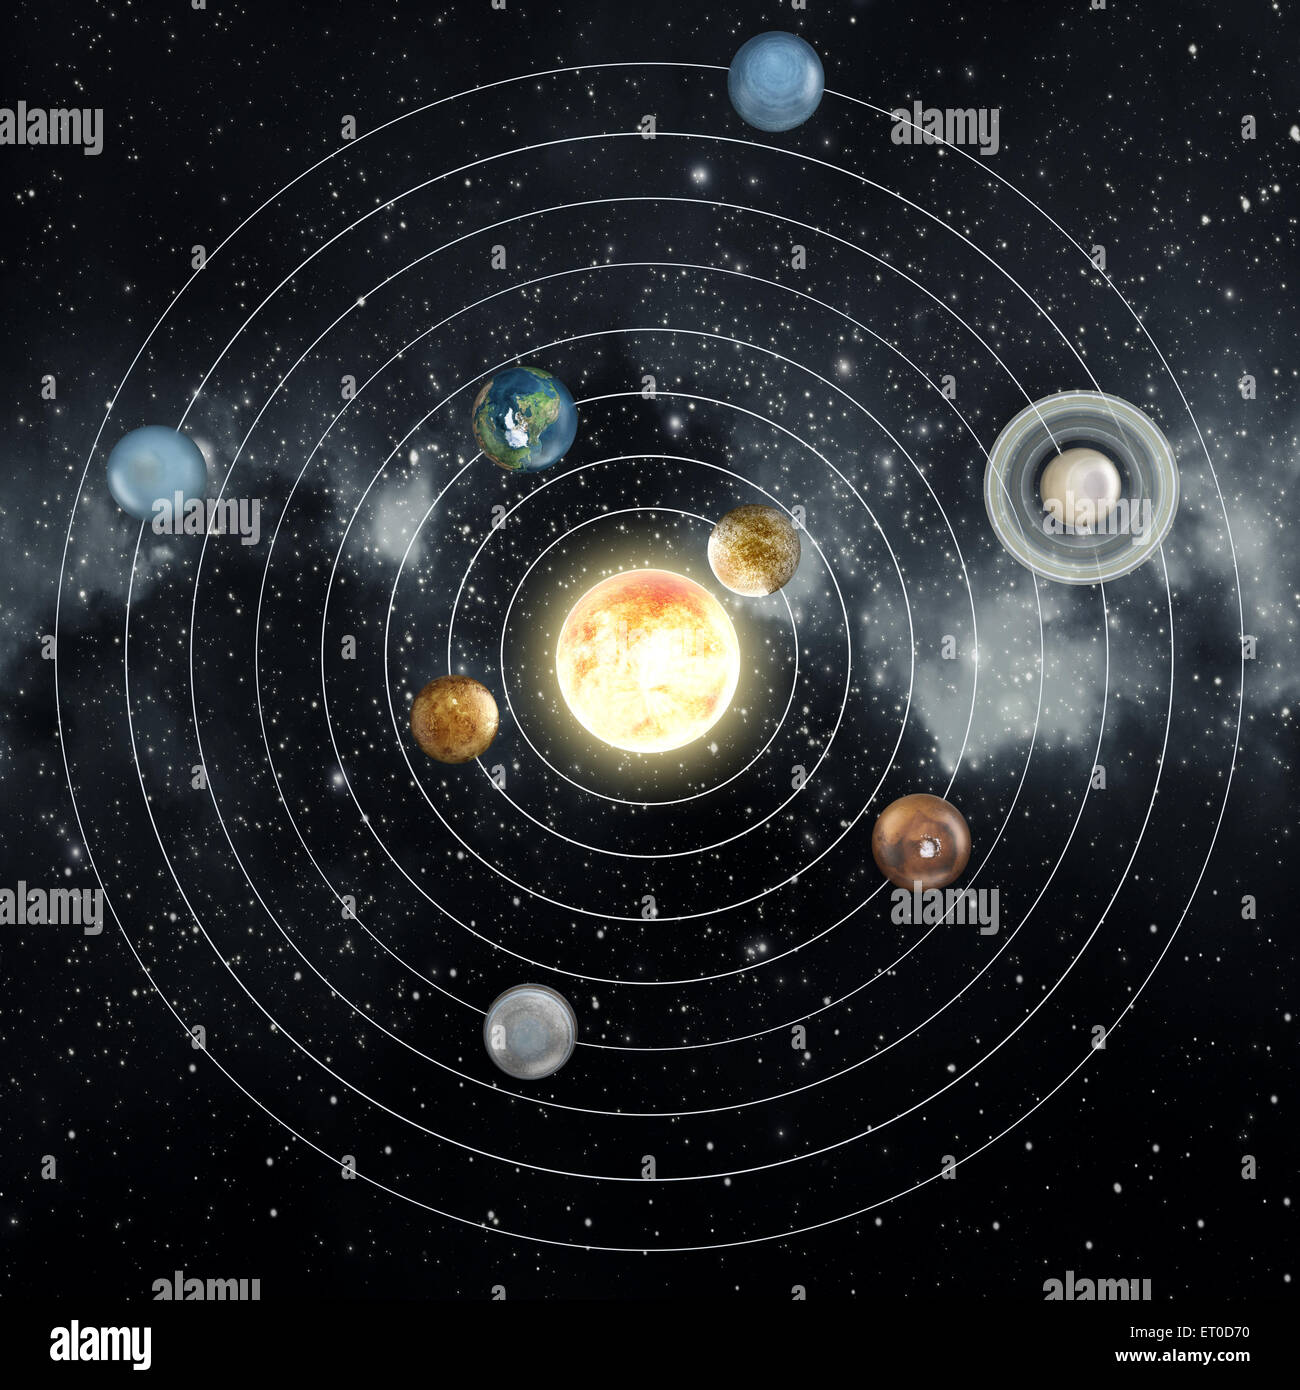 solar system diagram in the space stock photo 83603604 alamy rh alamy com diagram of solar system for kids diagram of solar system planets